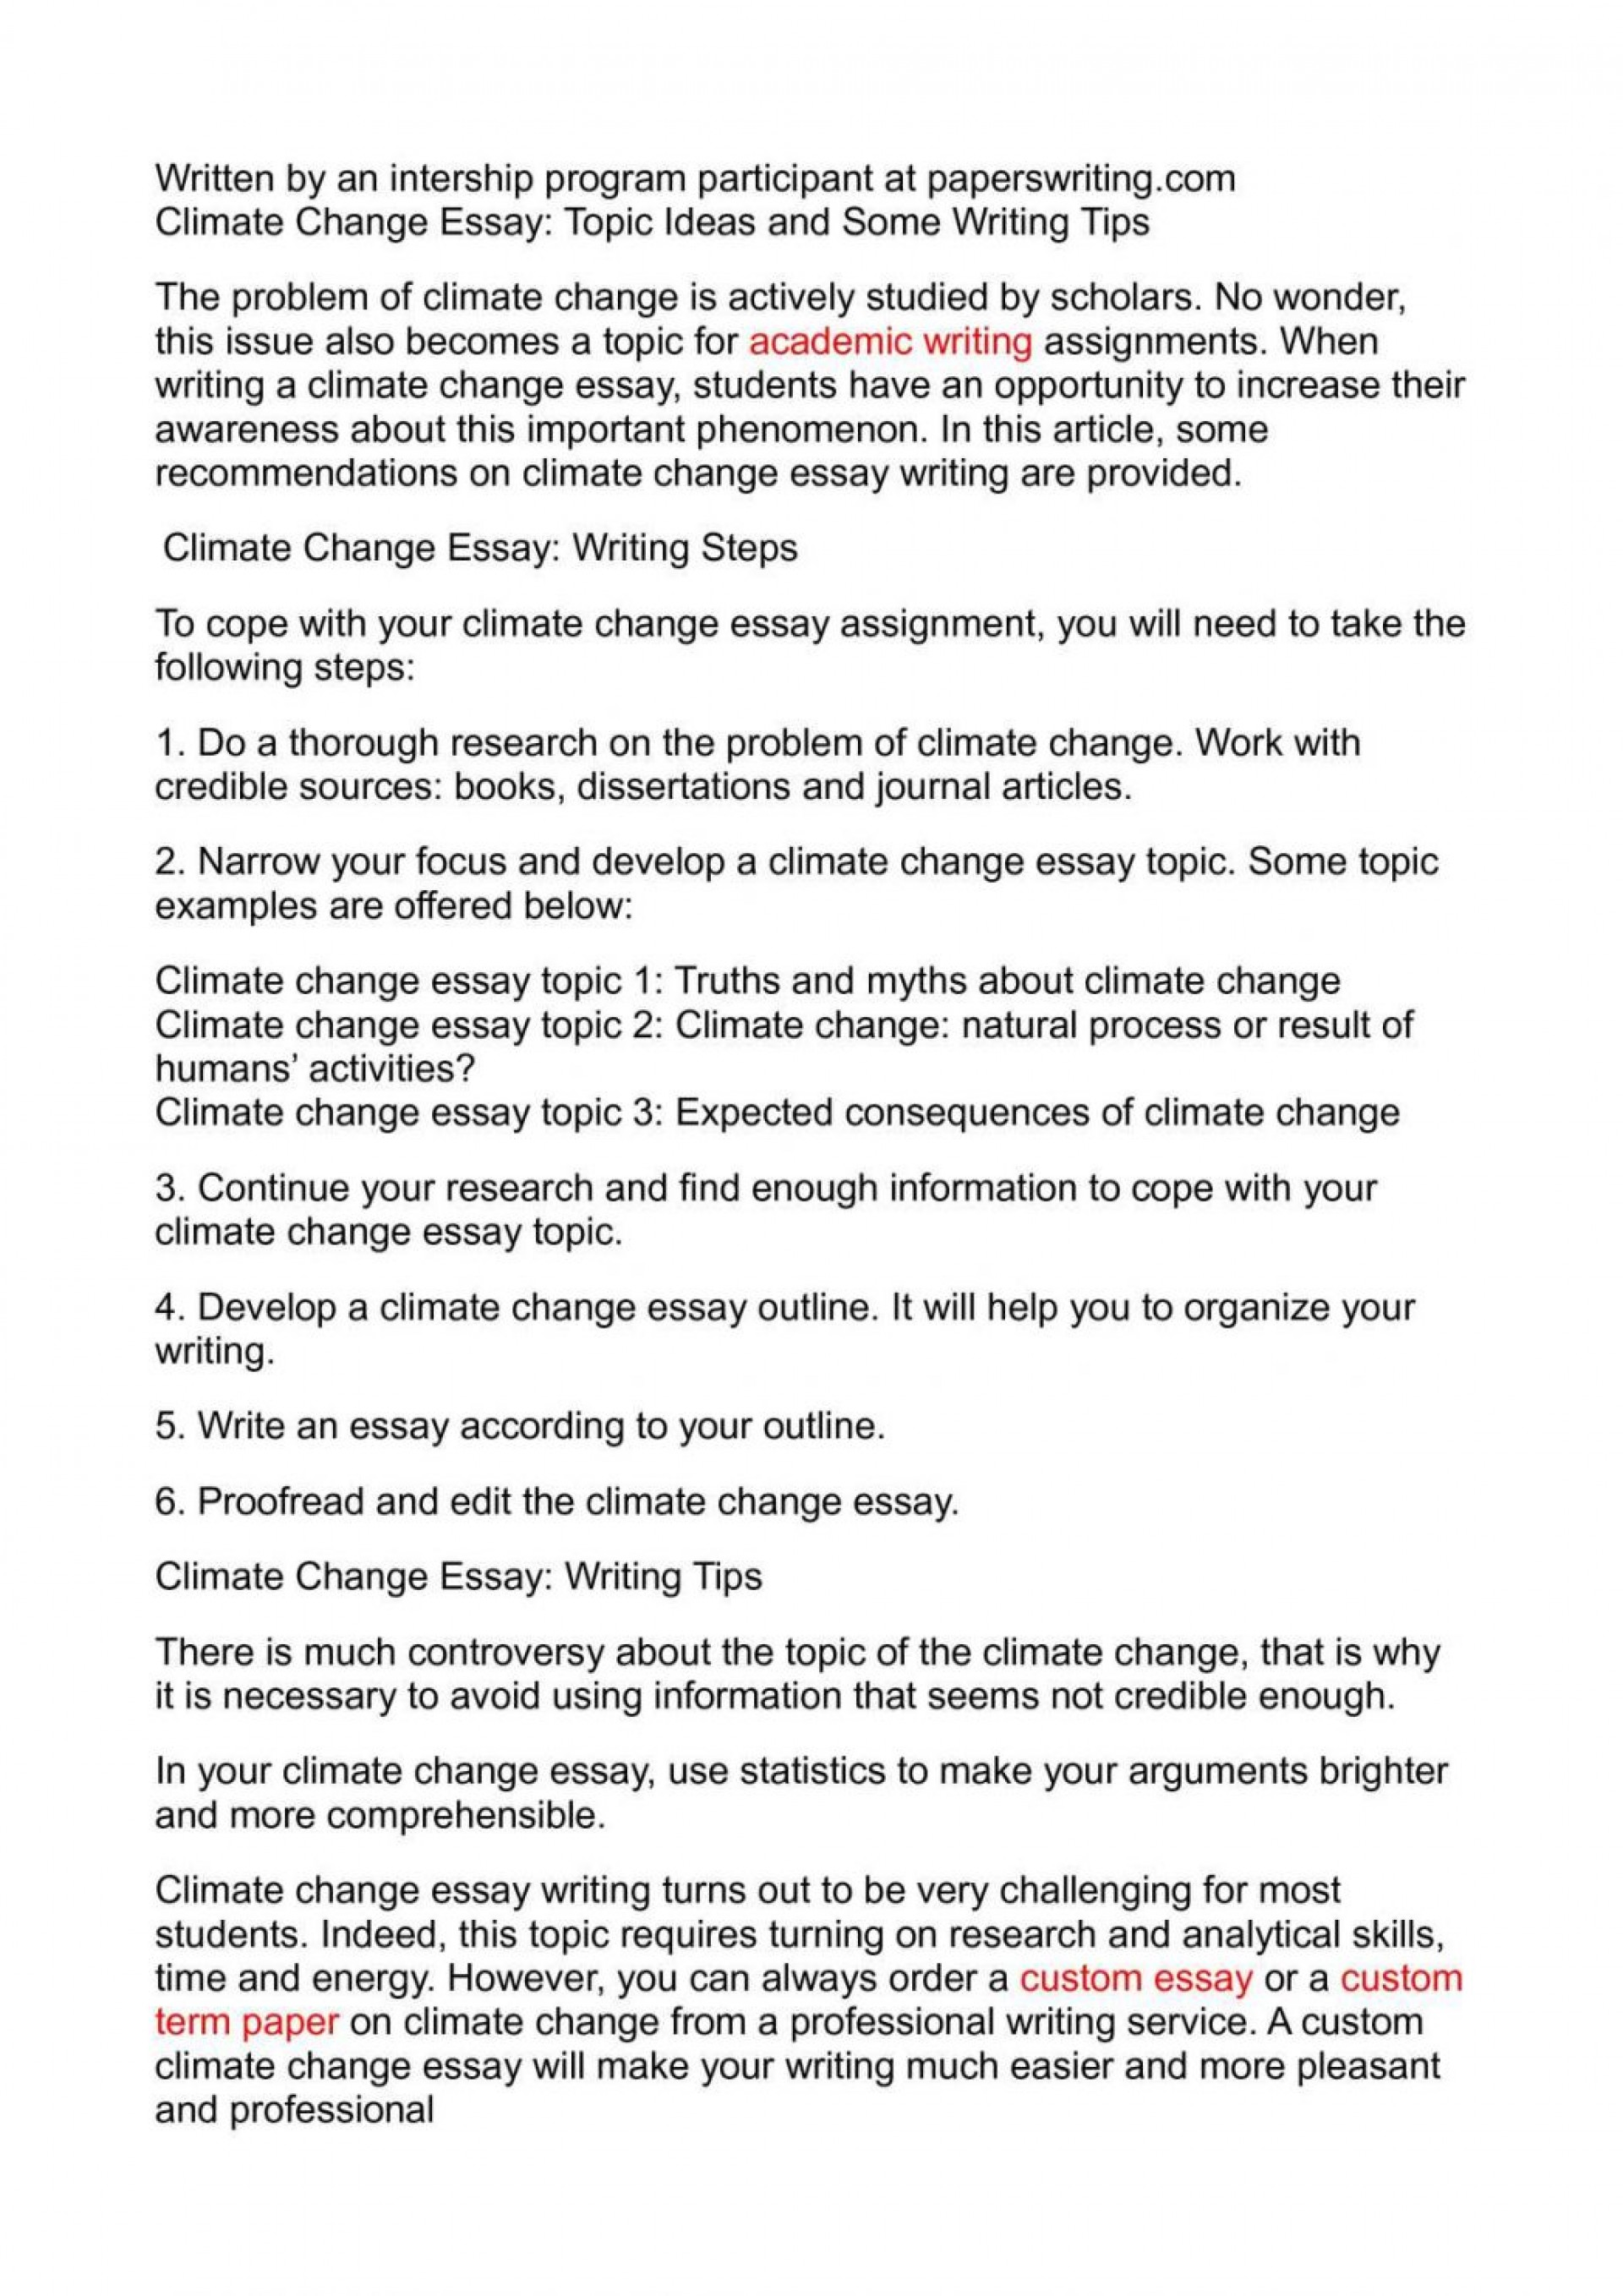 004 Global Climate Change Essay Warming And How To Write An Abo Argumentative On Persuasive Study Mode About Good Paper 1048x1483 Awesome High School In English 150 Words Kenya Art Competition 2018 1920